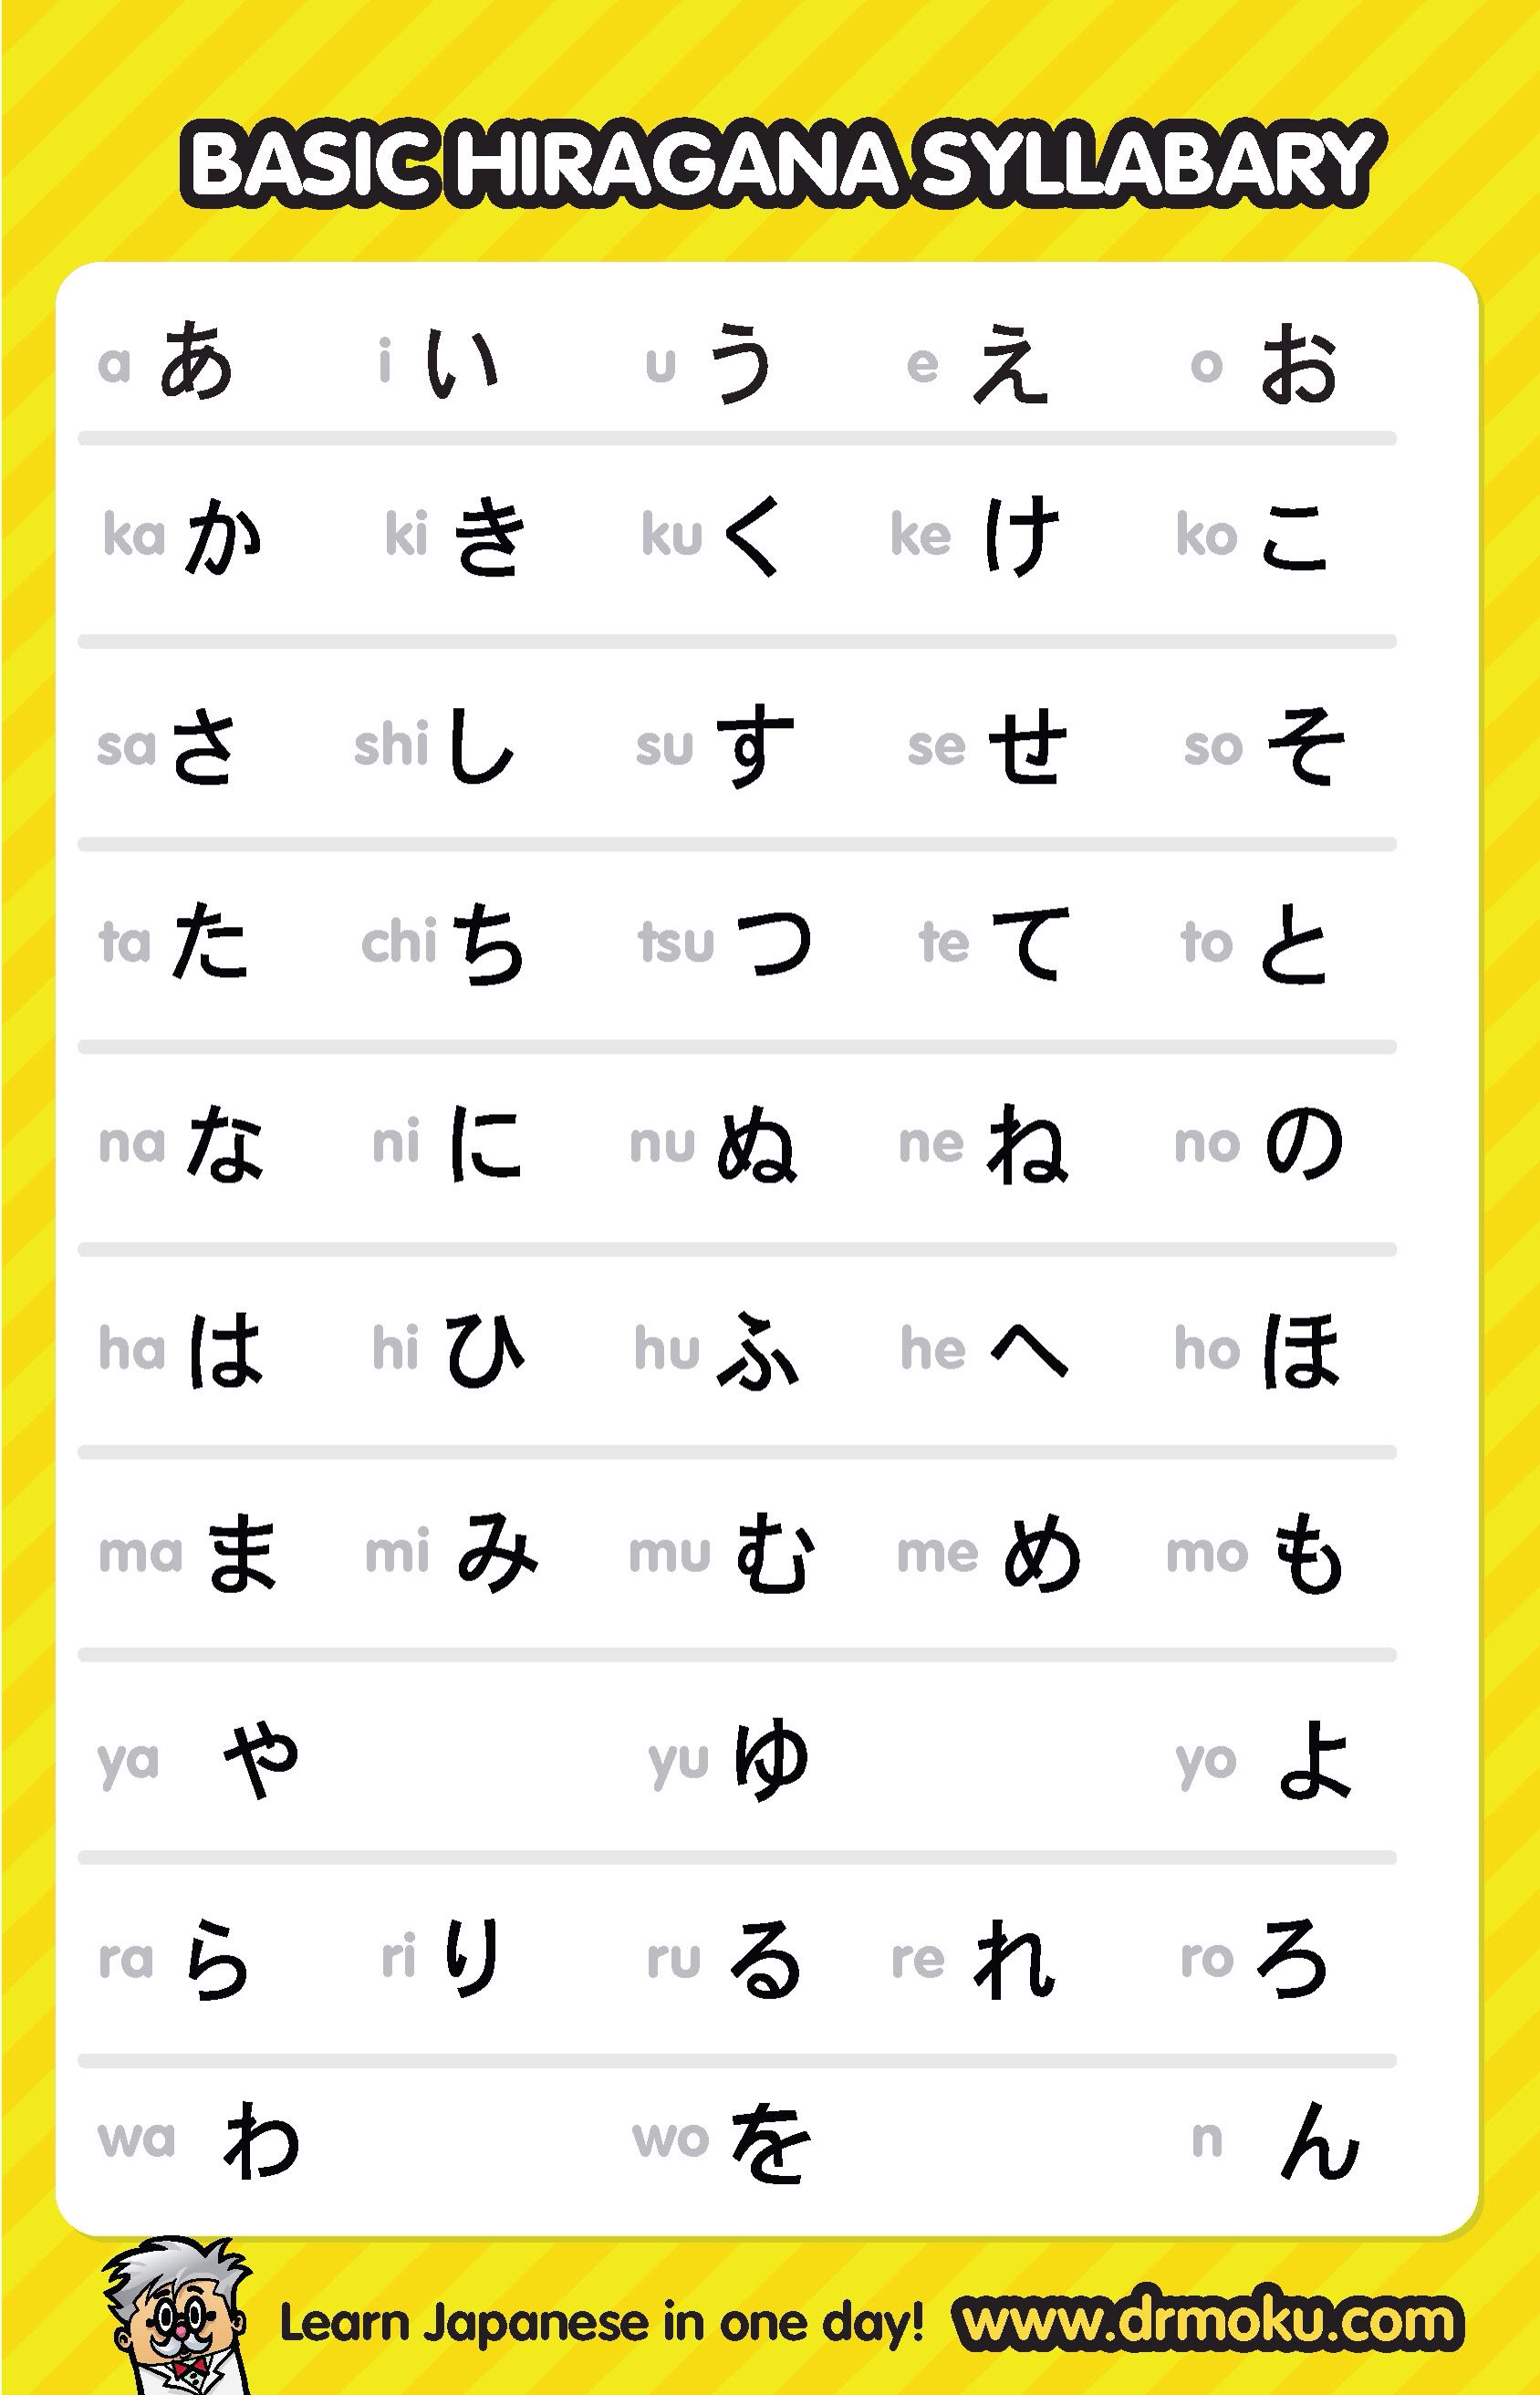 How To Become A Better Singer | Hiragana, Japanese words ...